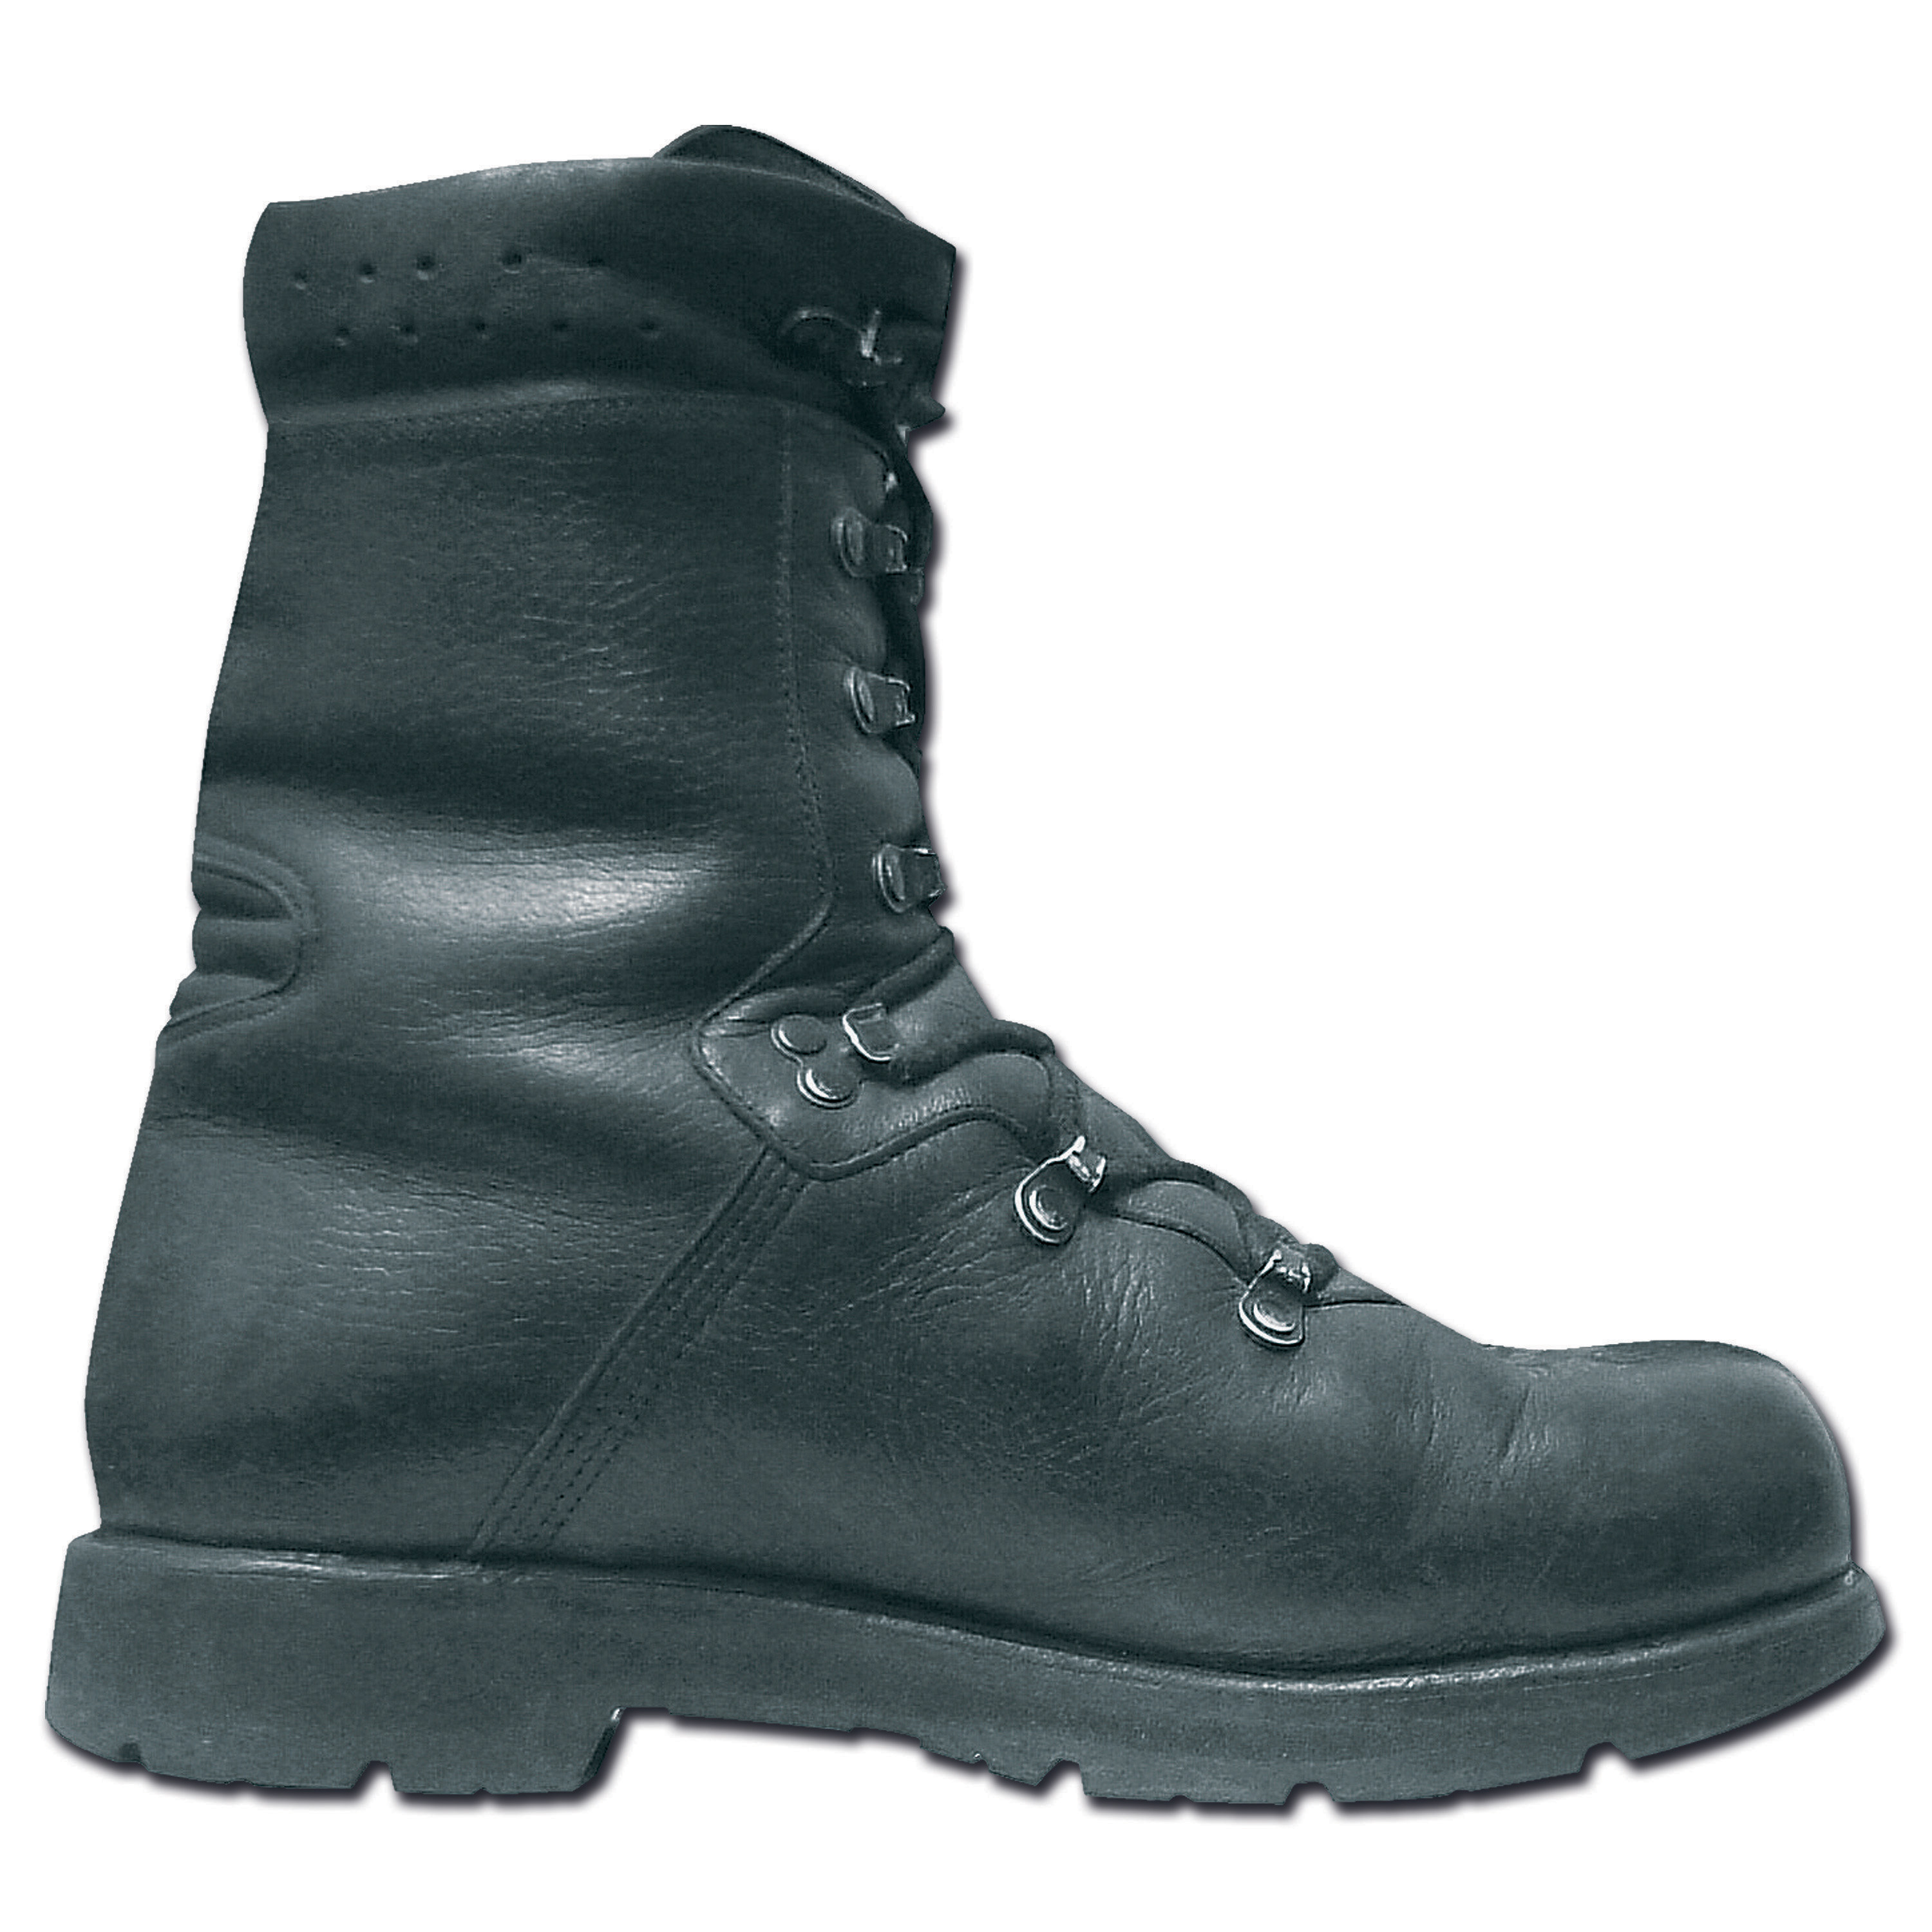 German Combat Boots New Style Used